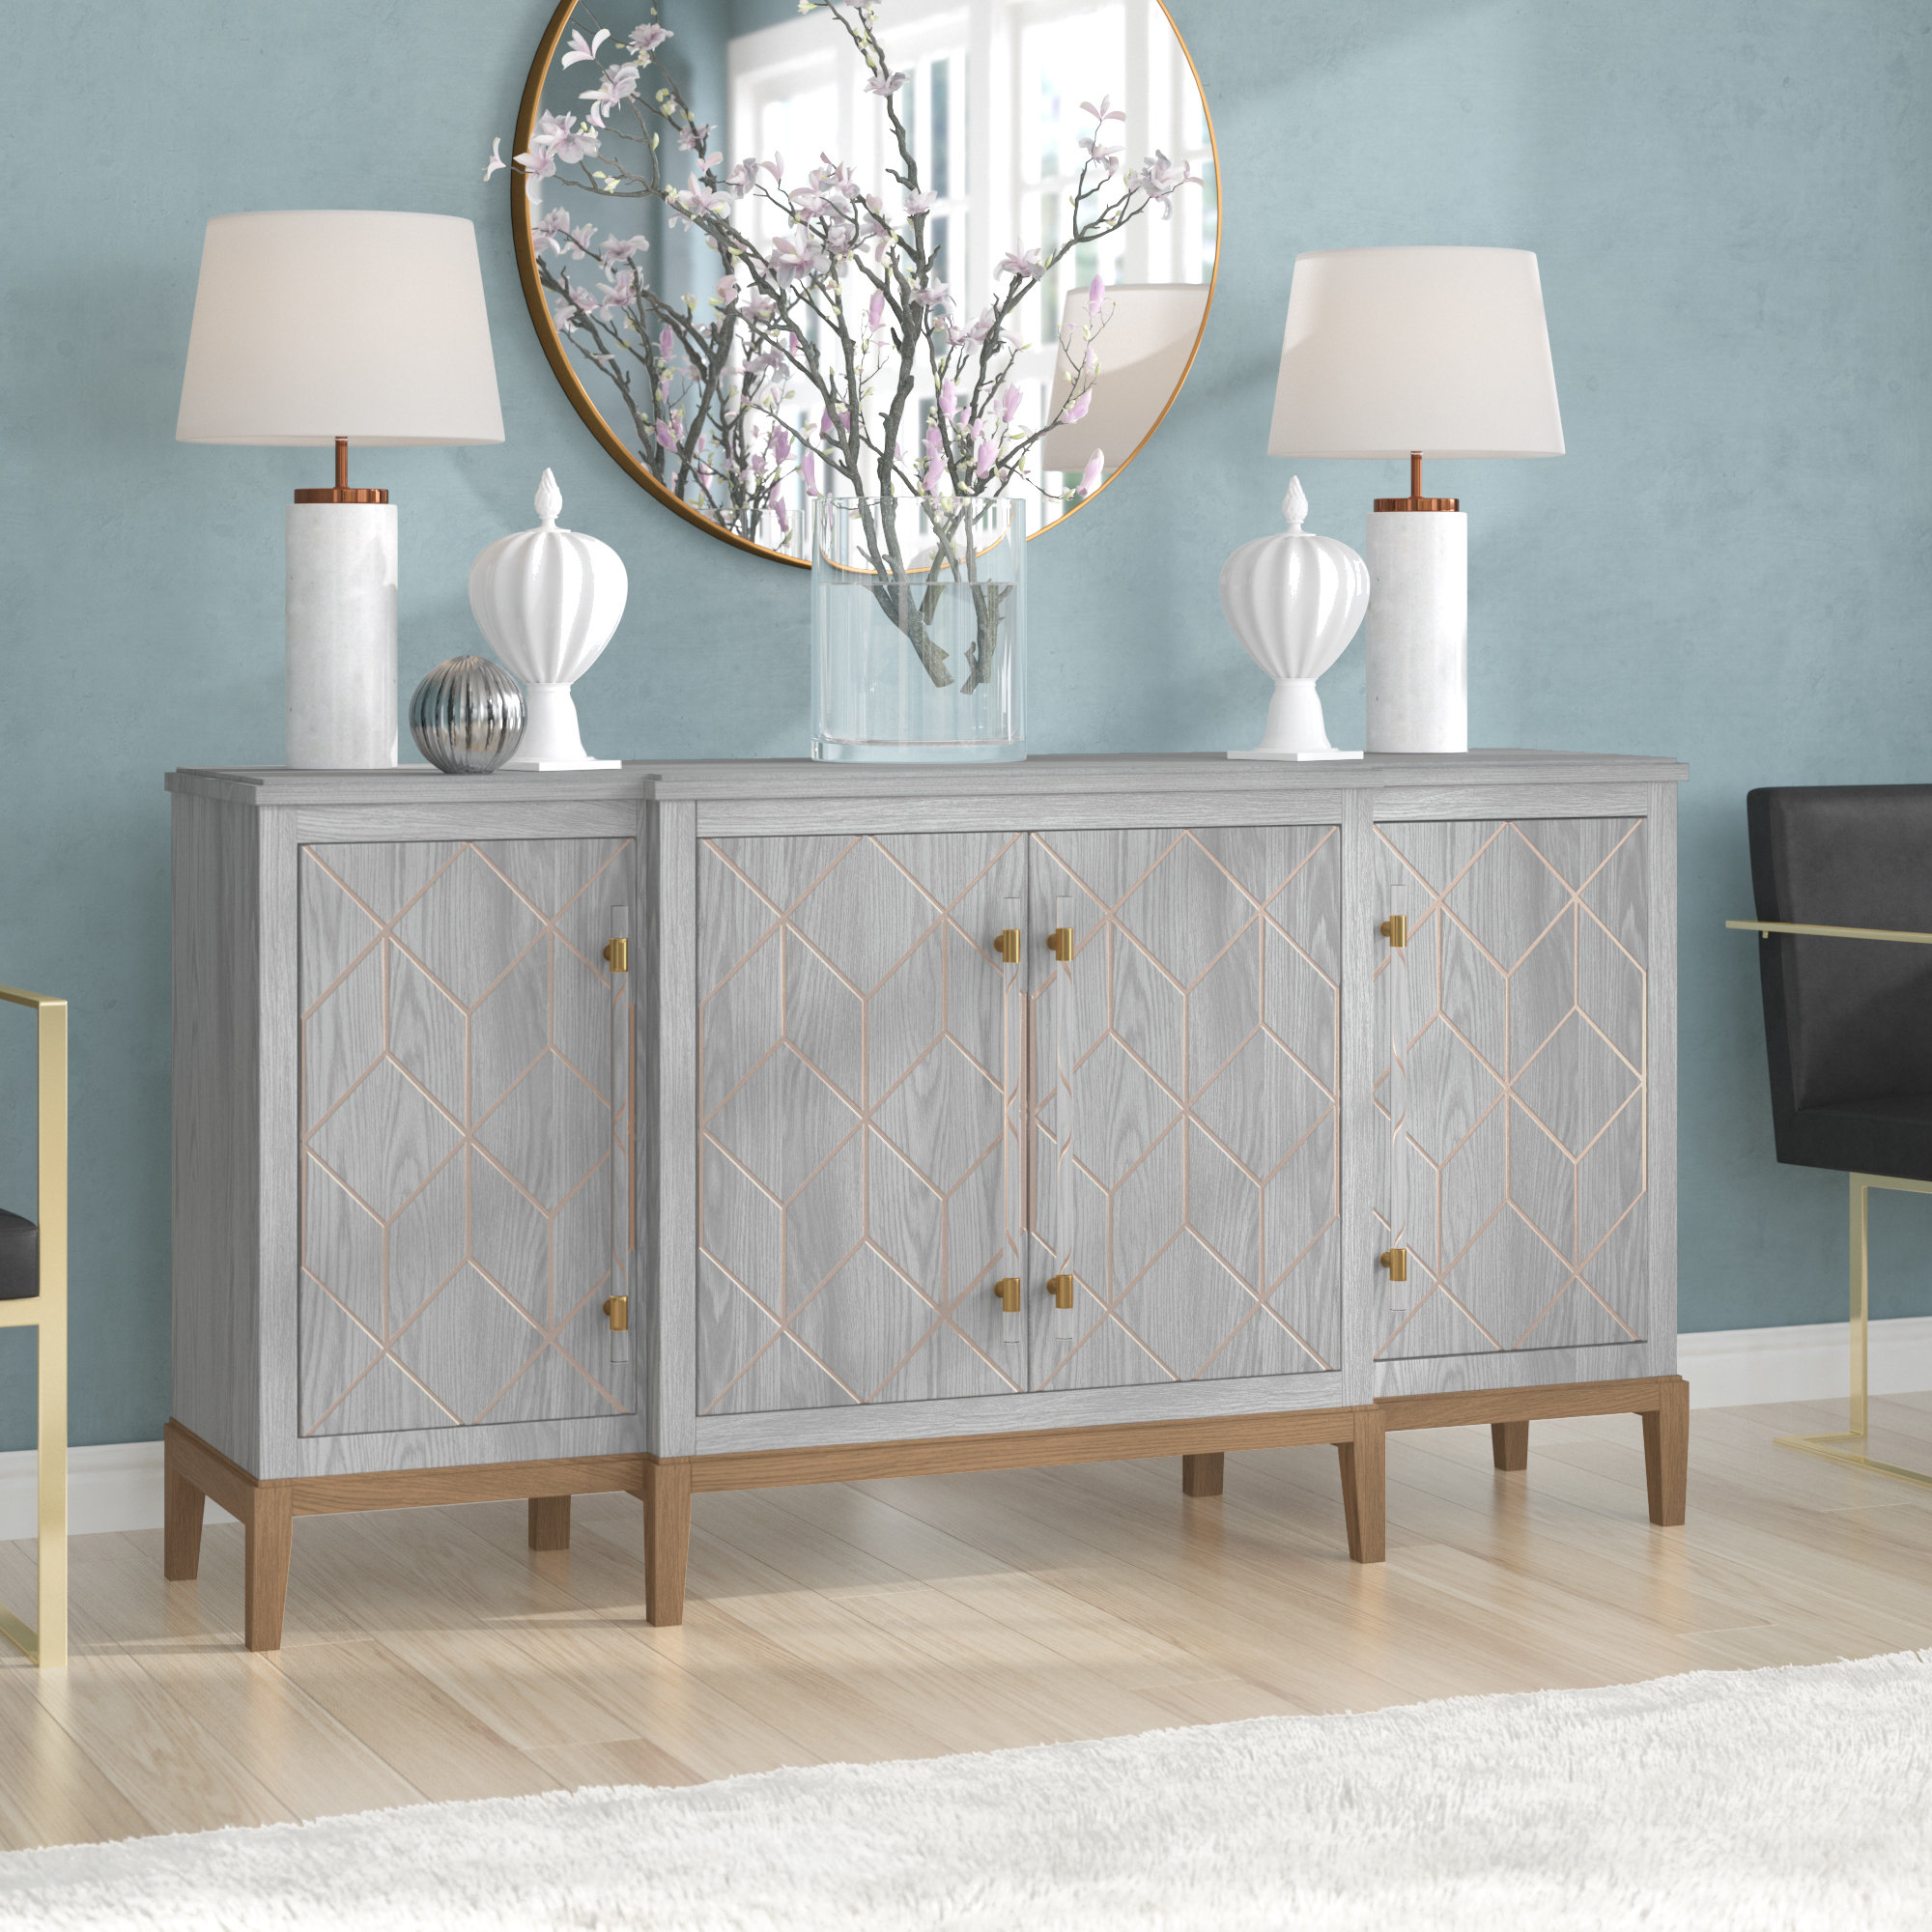 Extra Large Credenza | Wayfair Within Barr Credenzas (View 15 of 20)